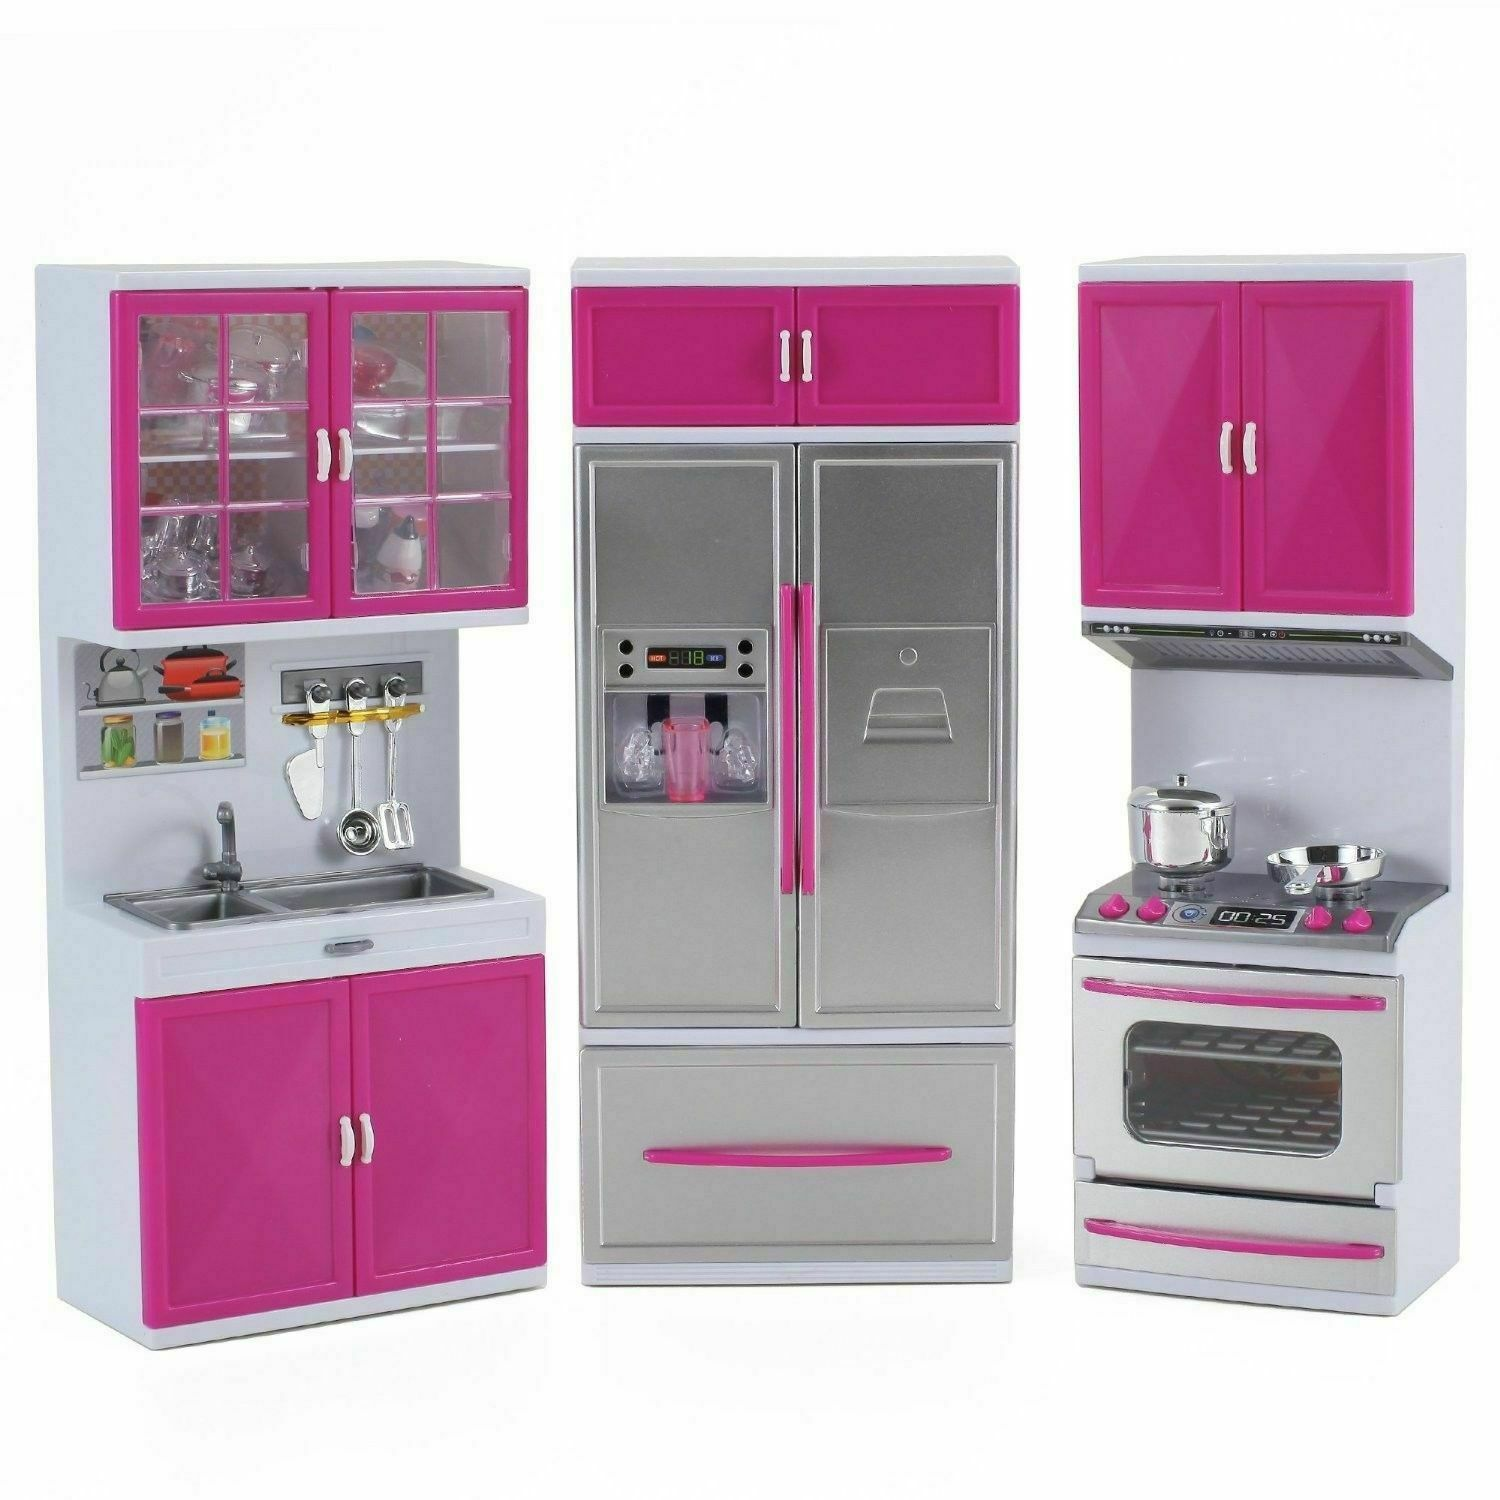 My Modern Kitchen Stove Refrigerator Battery Operated Toy Doll Kitchen For Sale Online Ebay